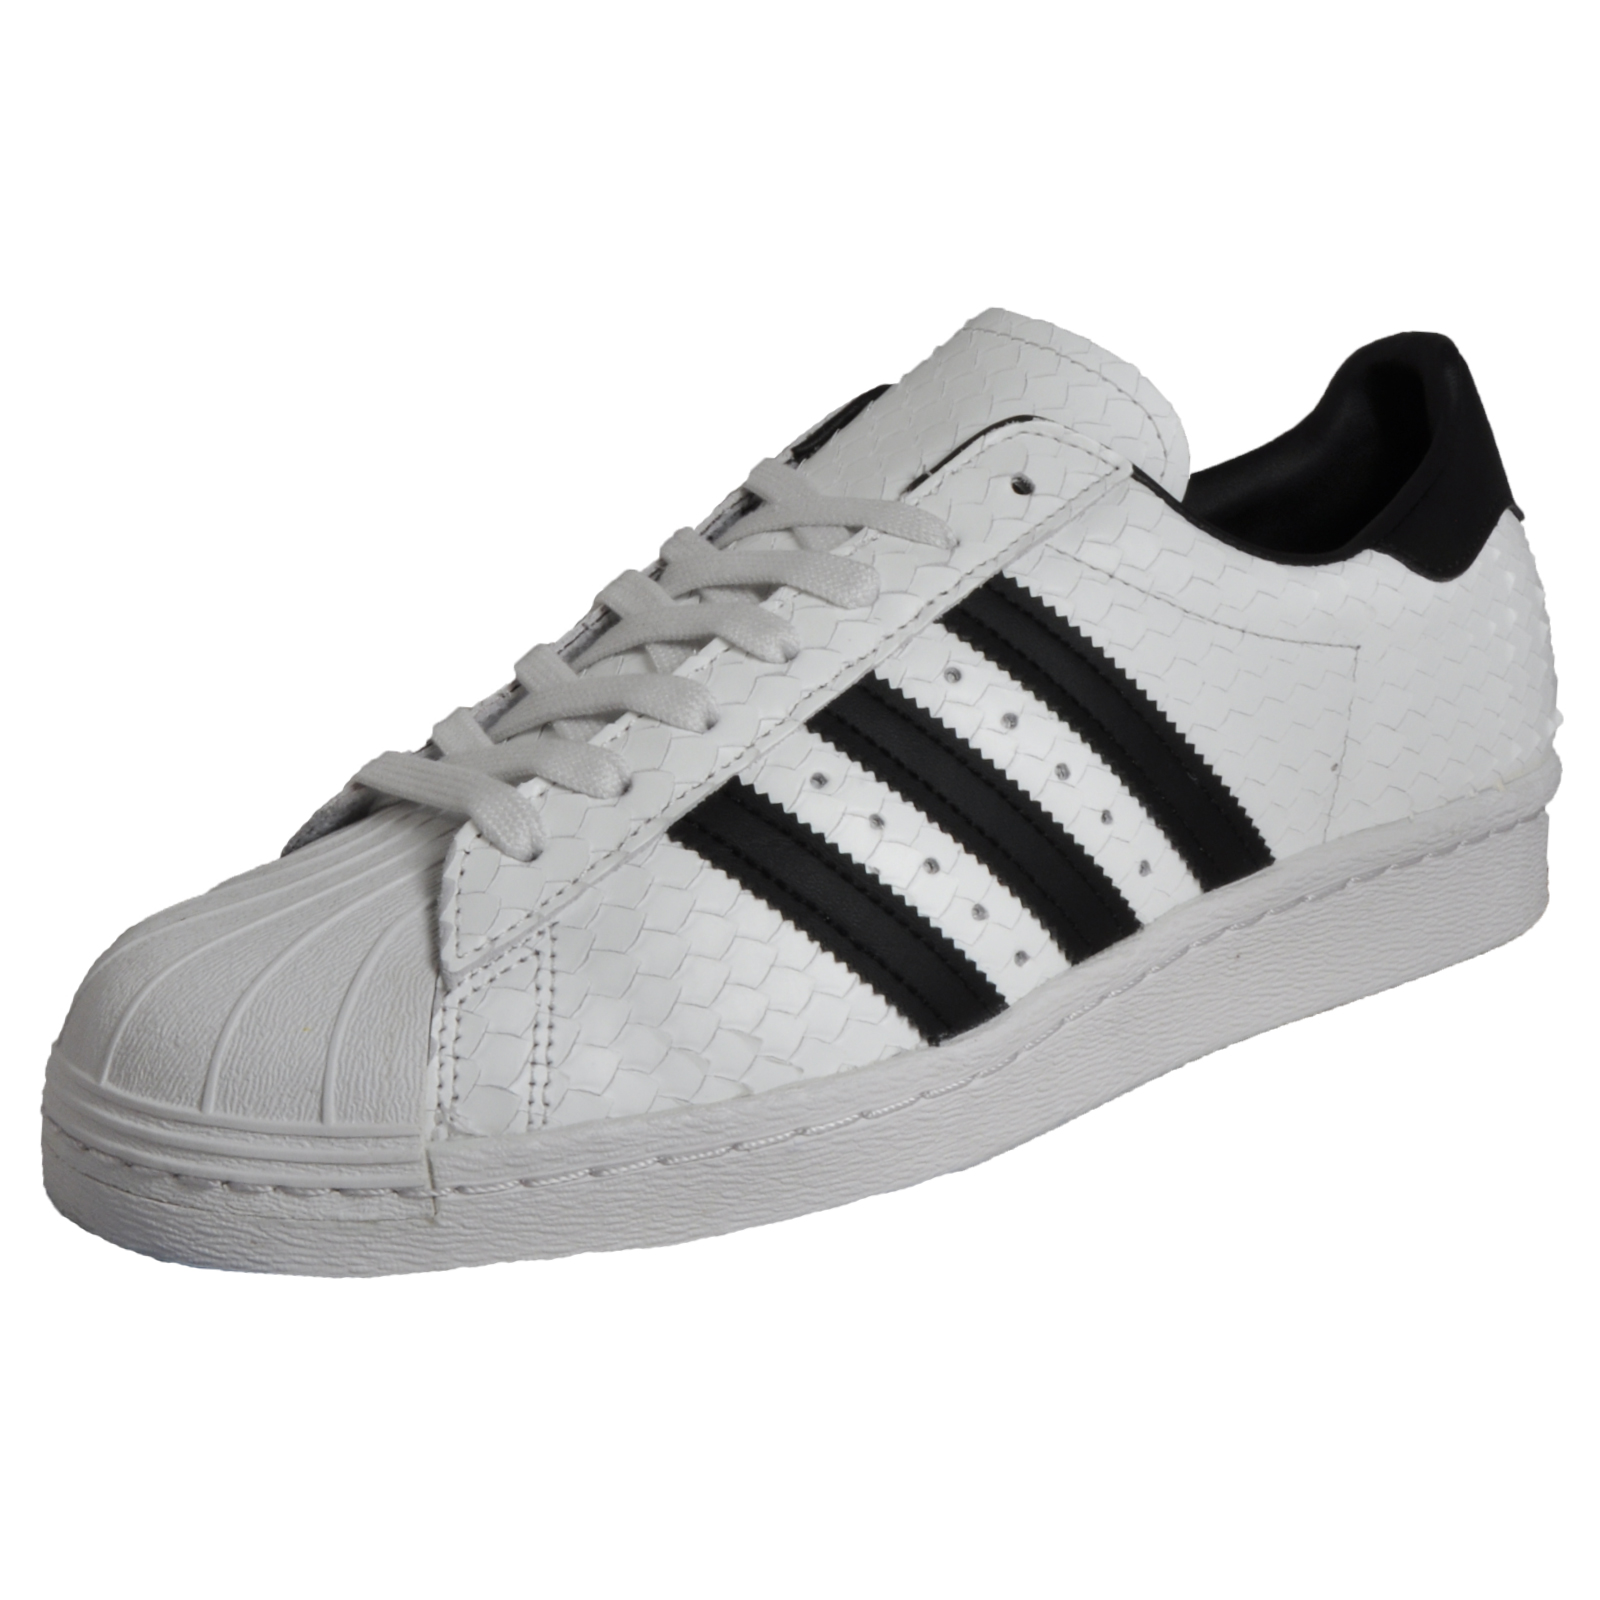 e43ce7fcd5ac Details about Adidas Originals Superstar 80s Men s Classic Retro Fashion  Trainers White LTD Ed